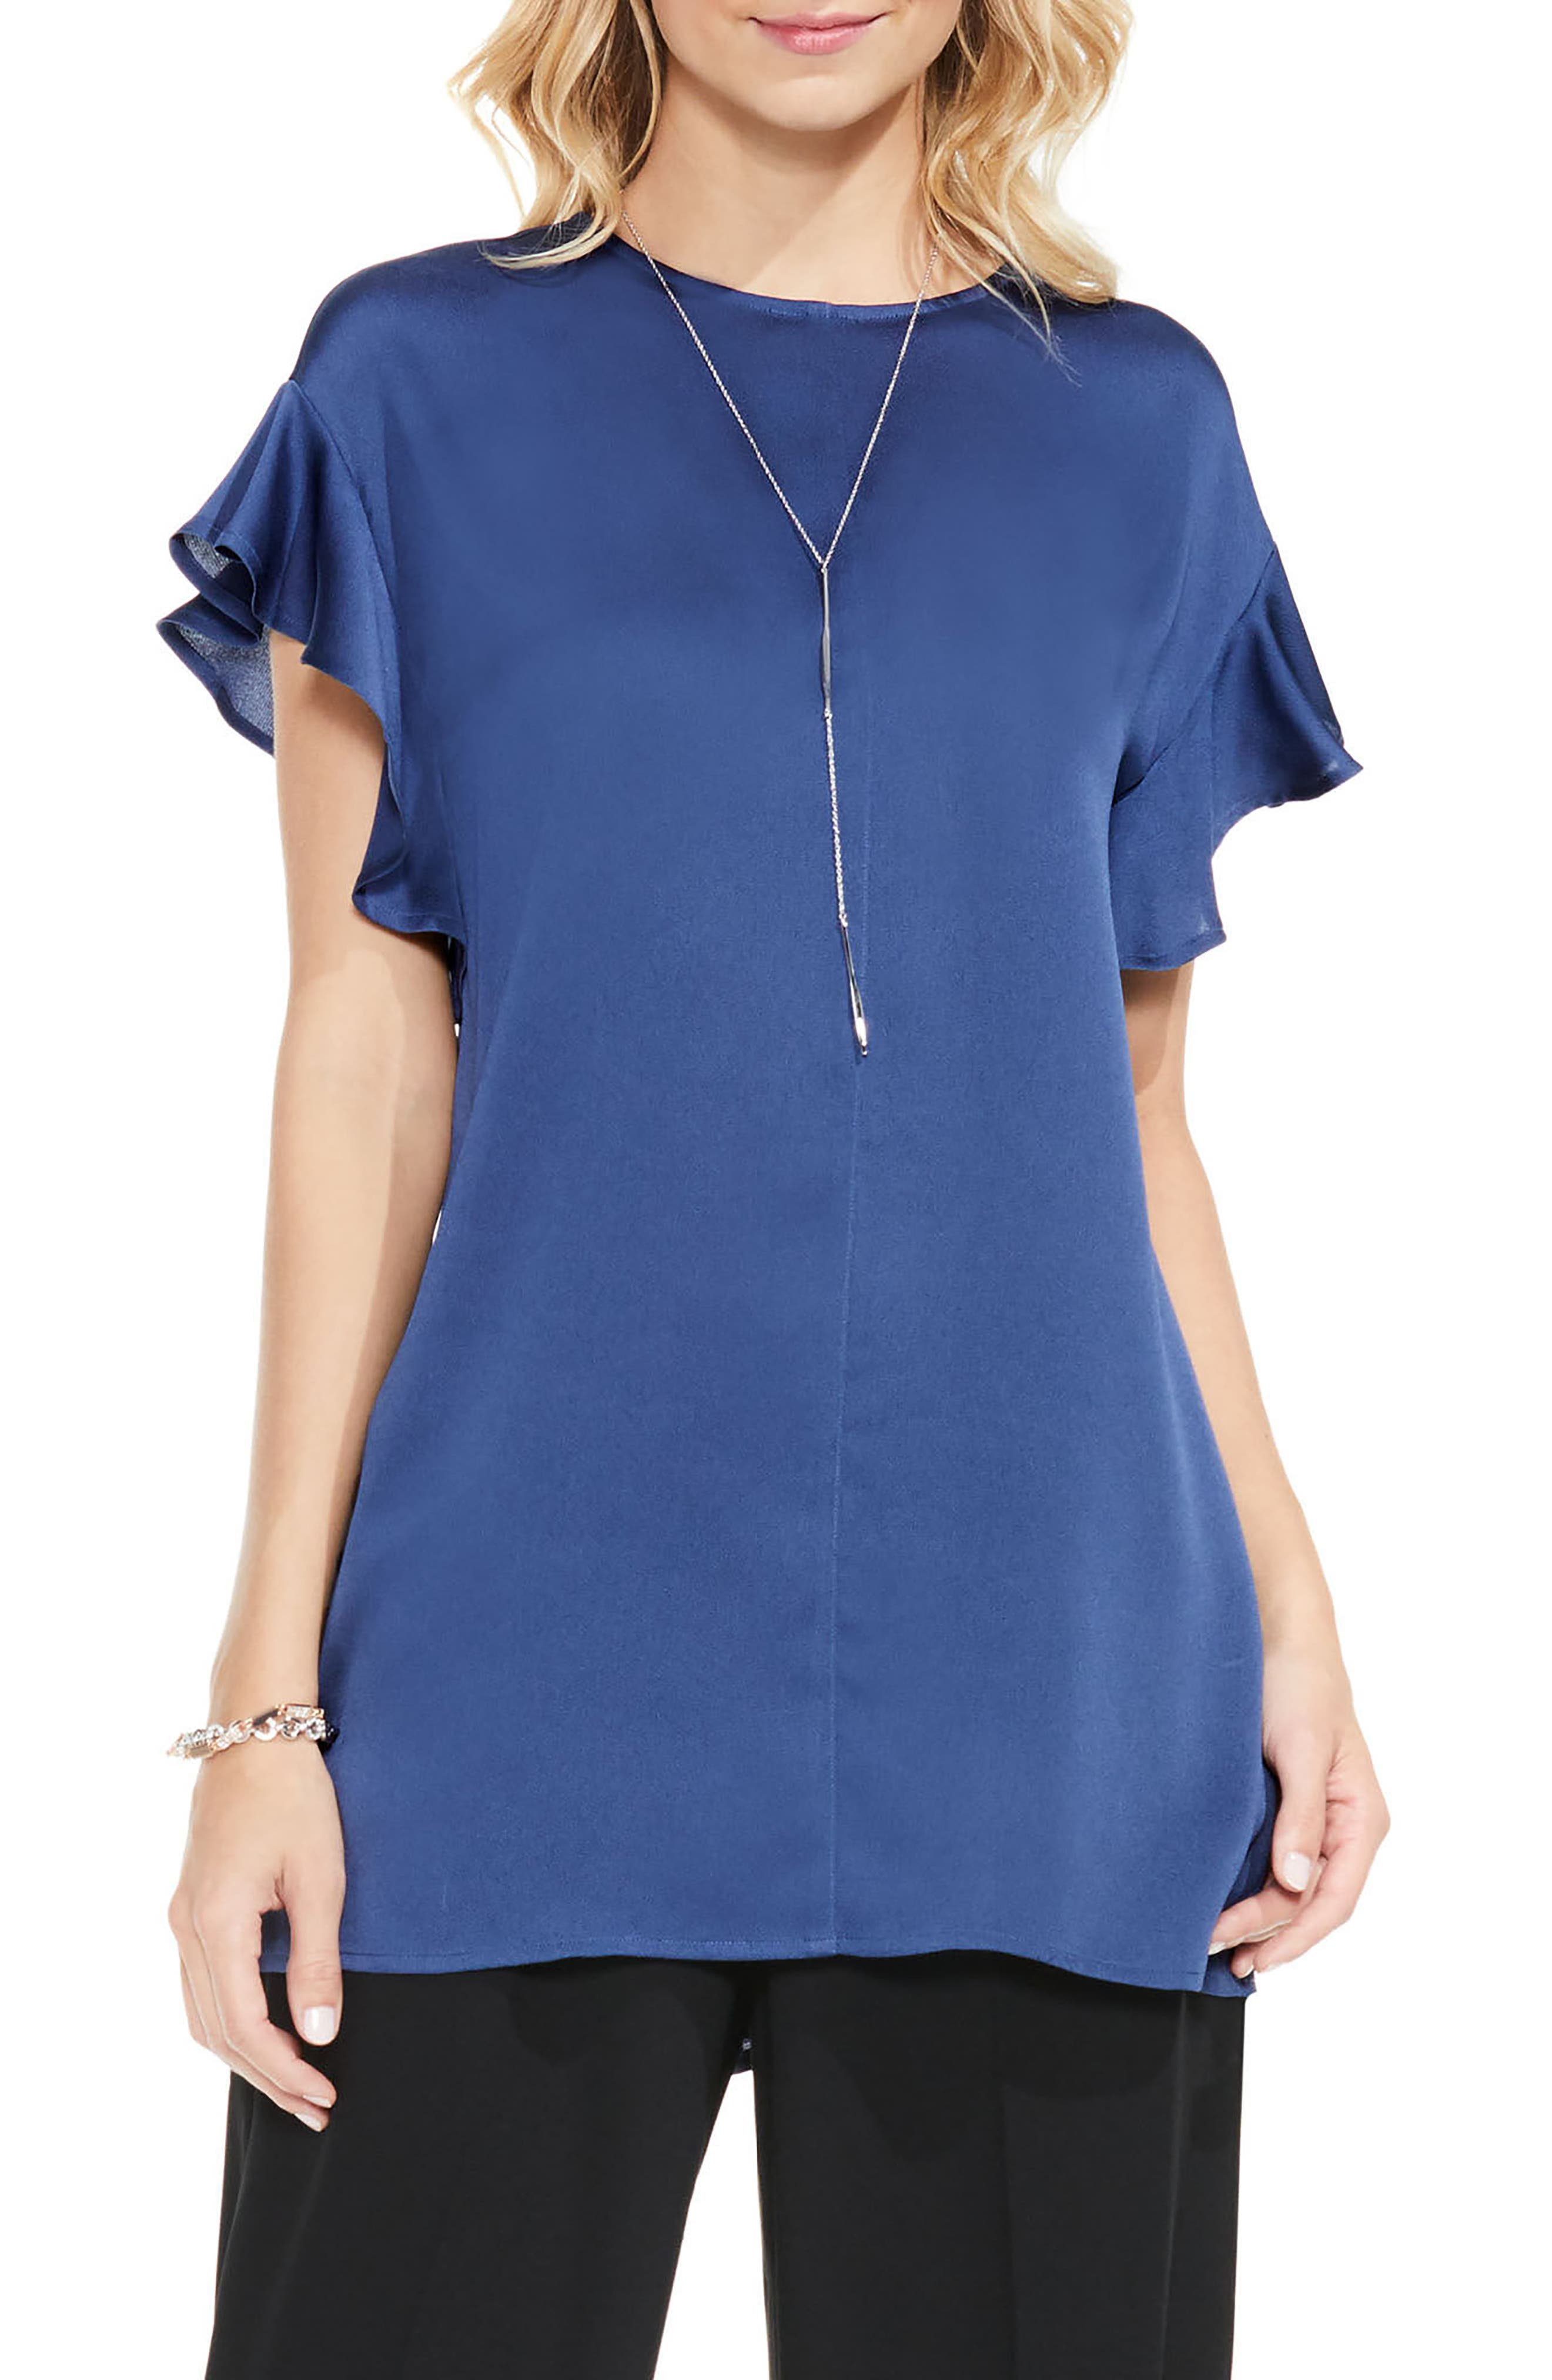 Alternate Image 1 Selected - Vince Camuto Ruffle Sleeve Blouse